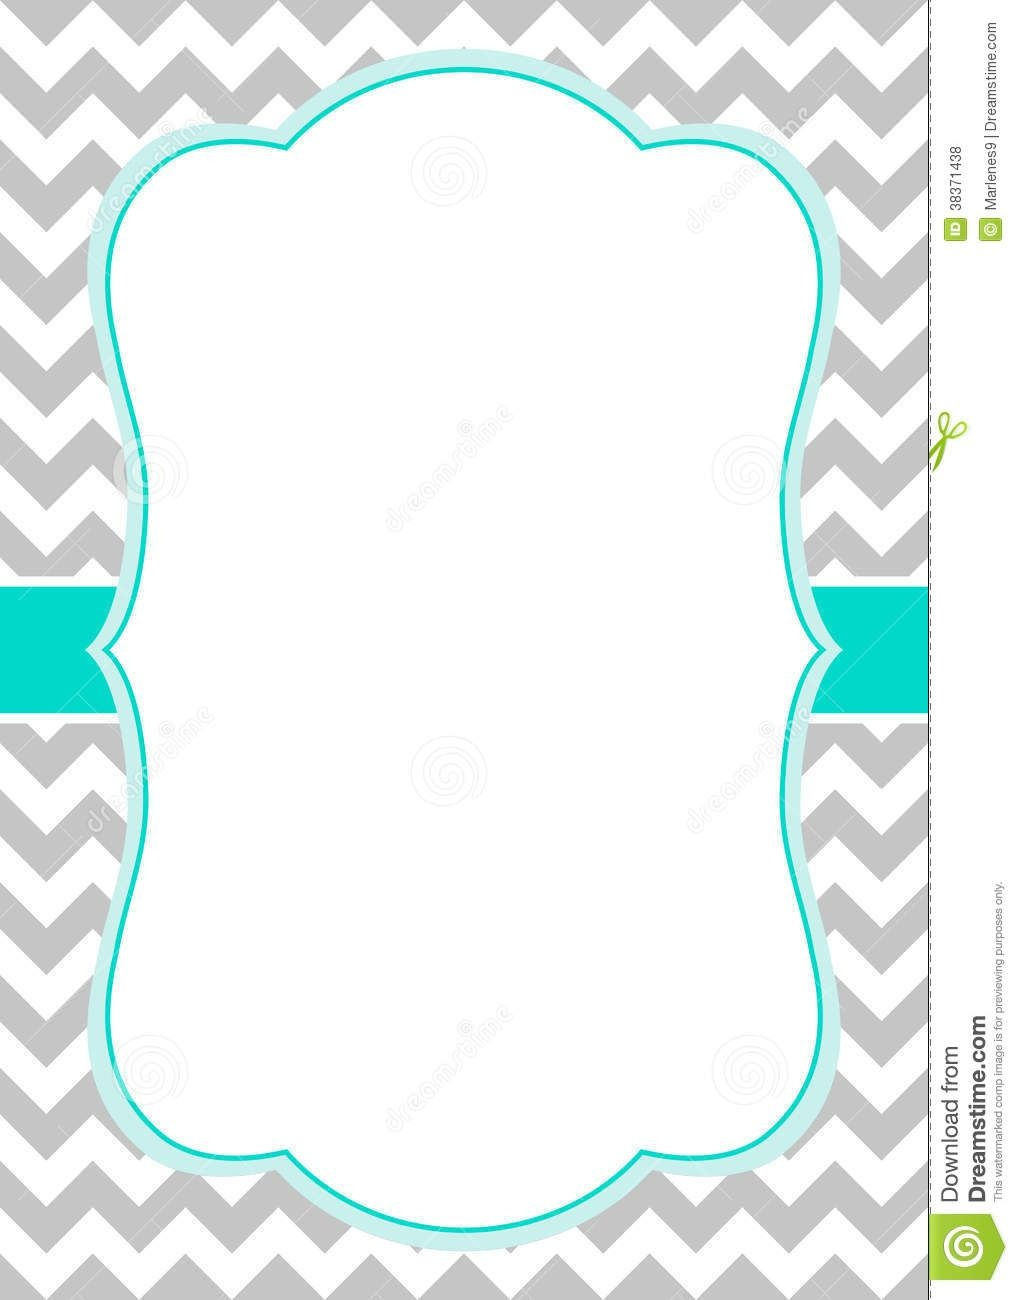 Free Chevron Border Templateadmin Admin | Baby Shower Ideas | Free - Free Chevron Printable Invitations